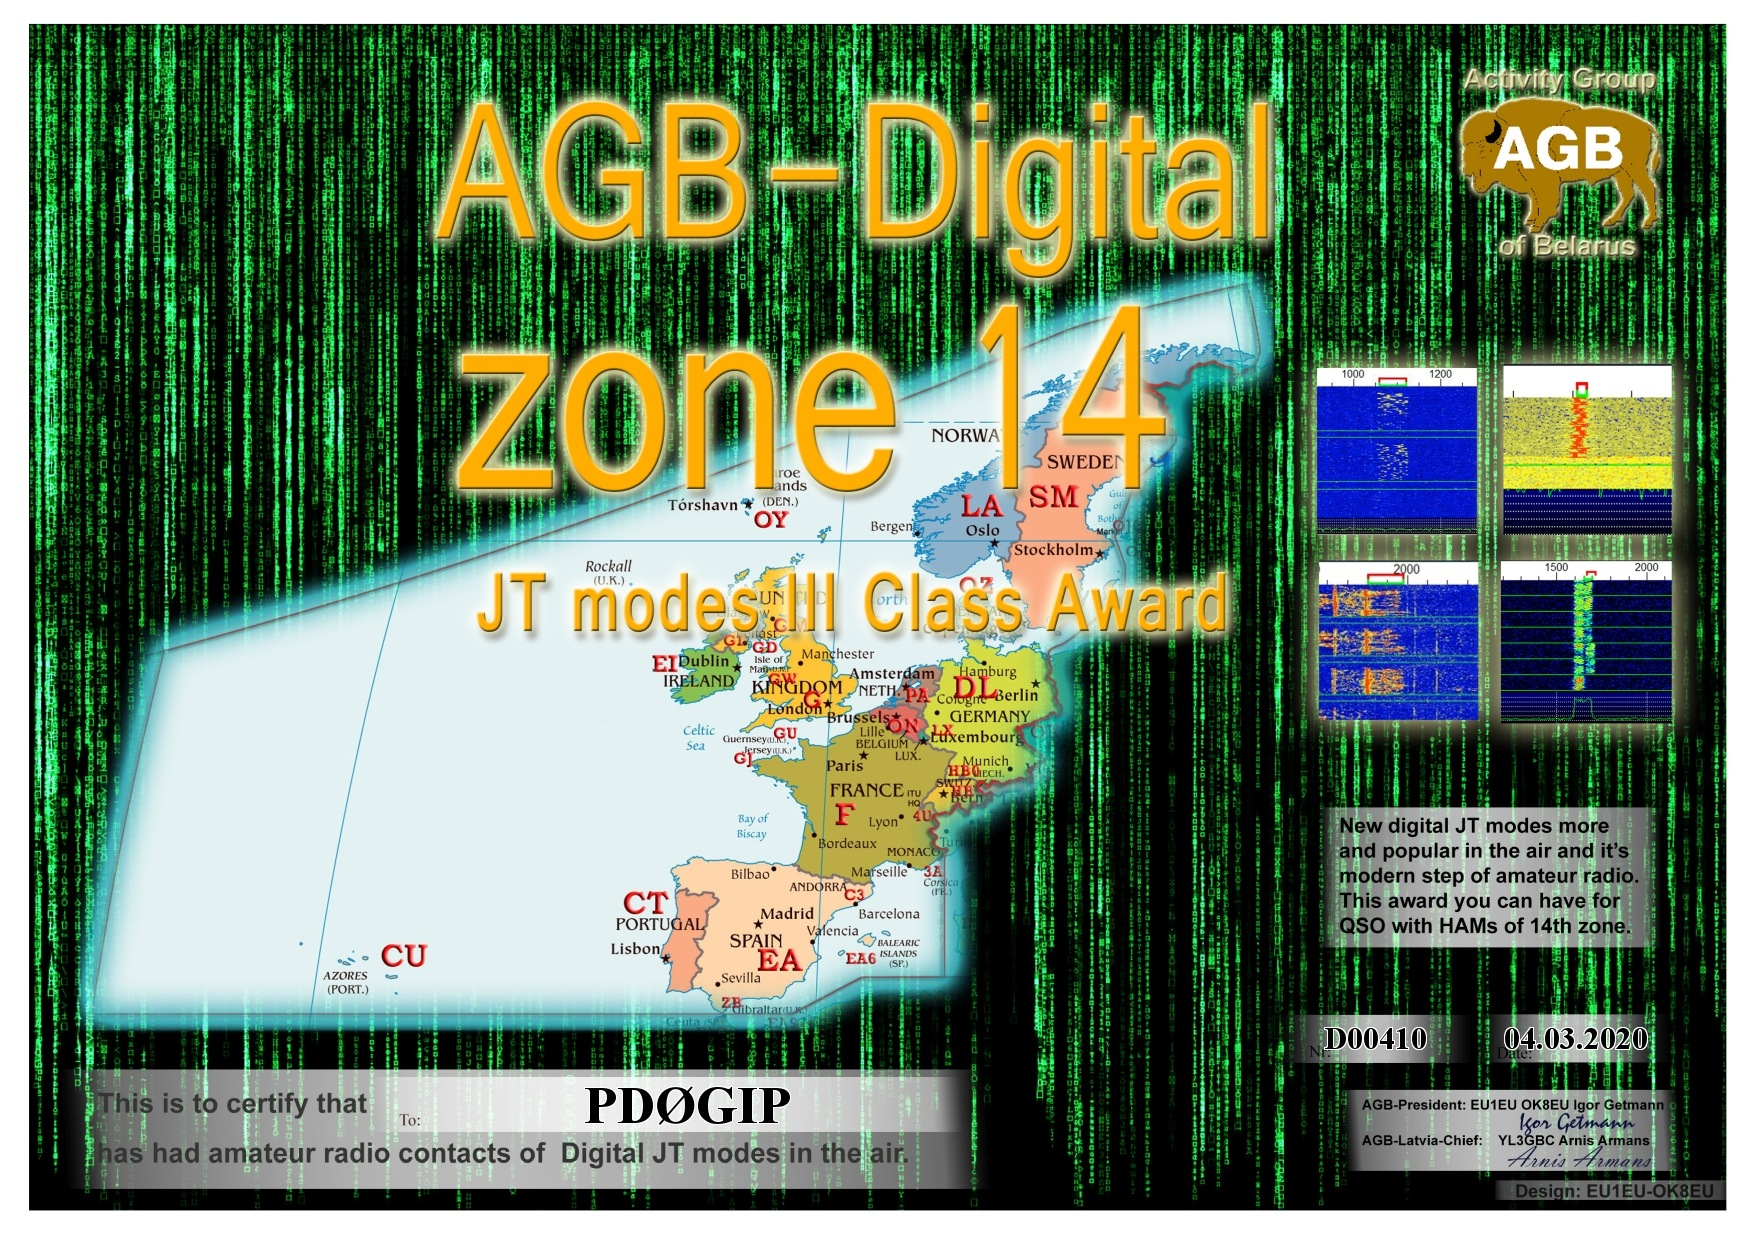 PD0GIP ZONE14 BASIC III AGB